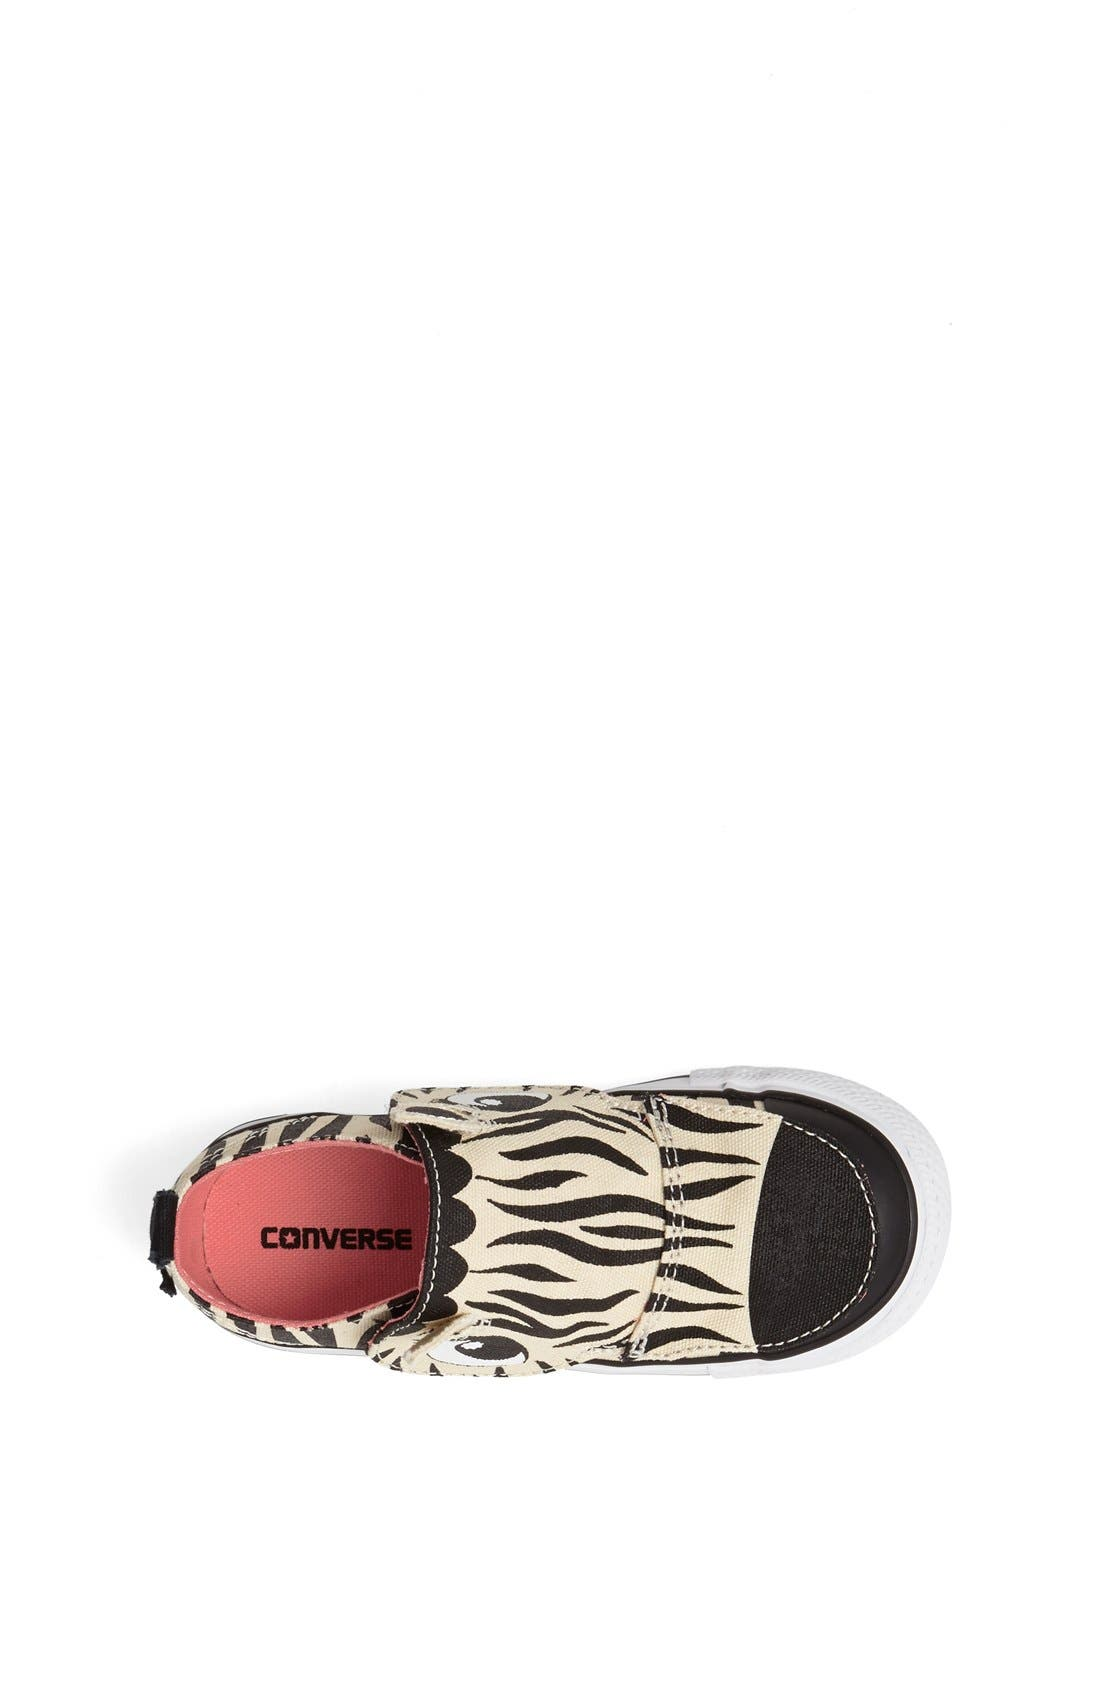 Alternate Image 3  - Converse 'No Problem' Zebra Face Sneaker (Baby, Walker & Toddler)